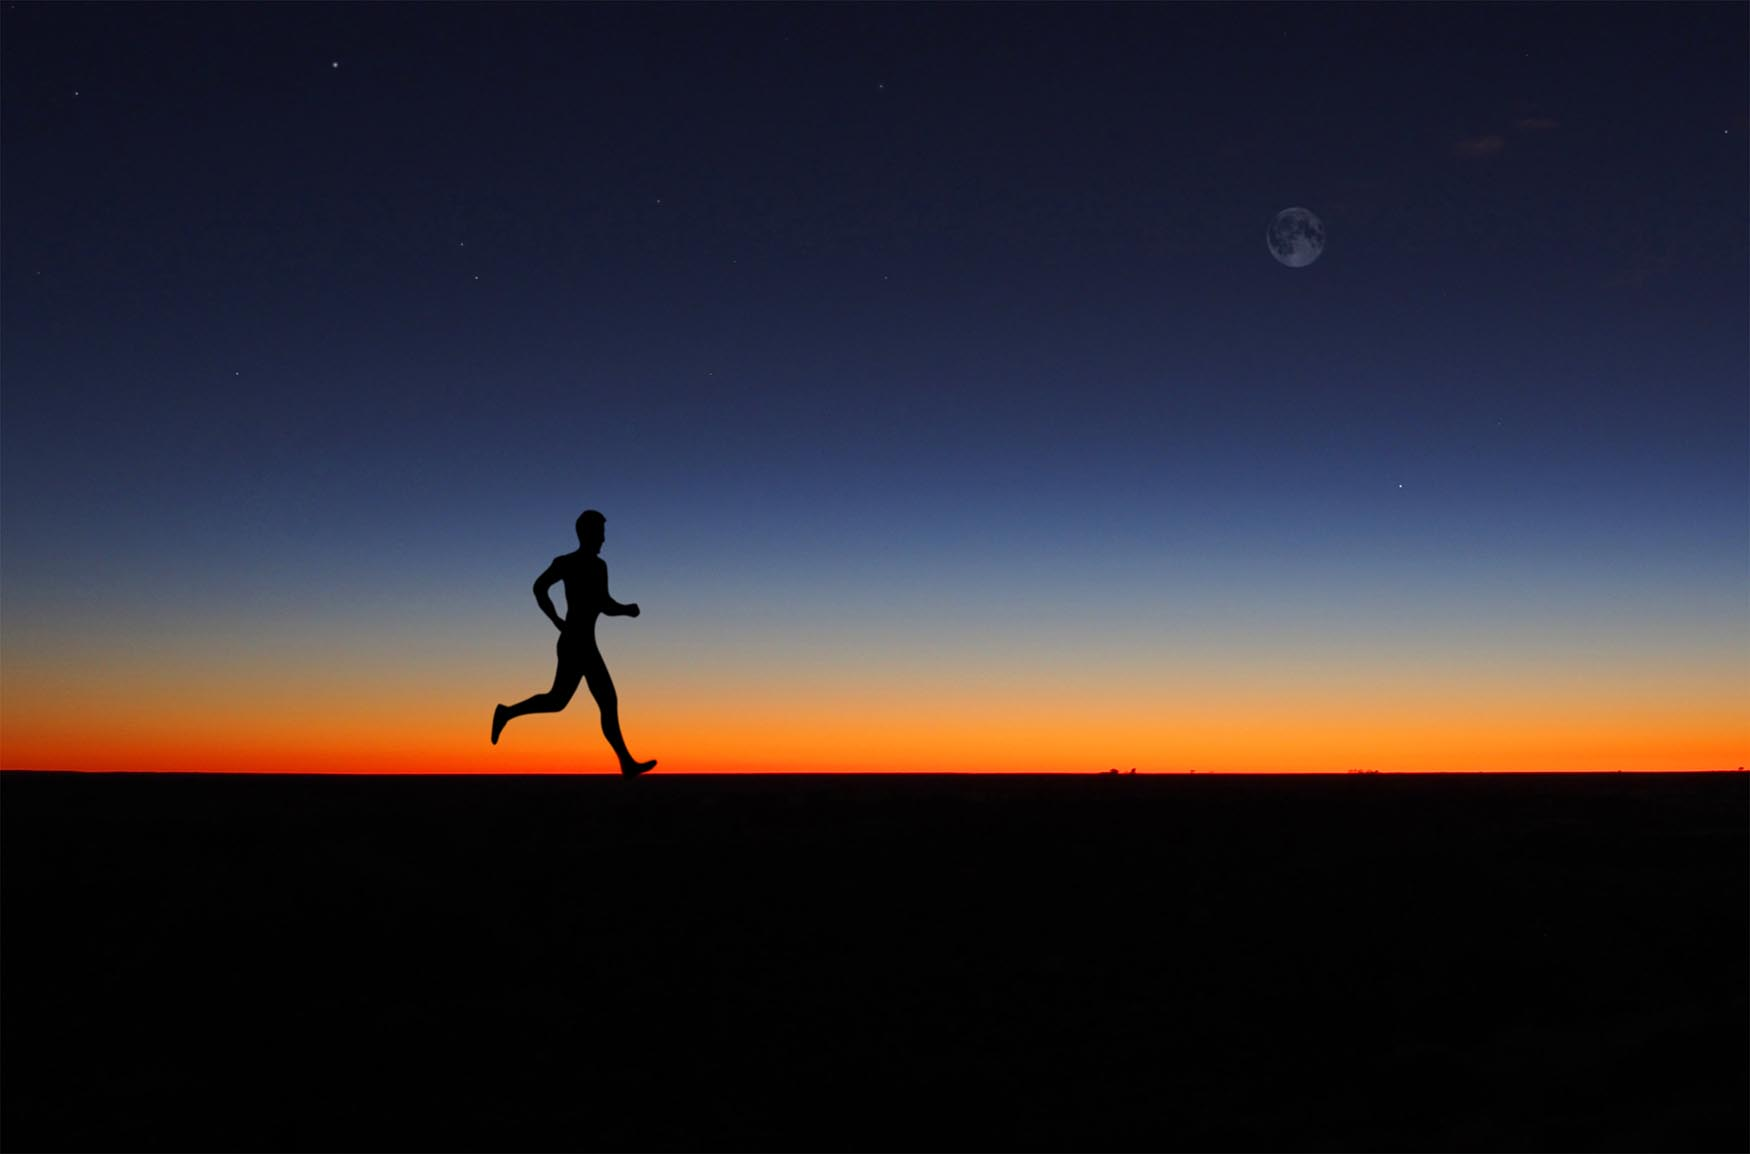 Man running alone at dawn